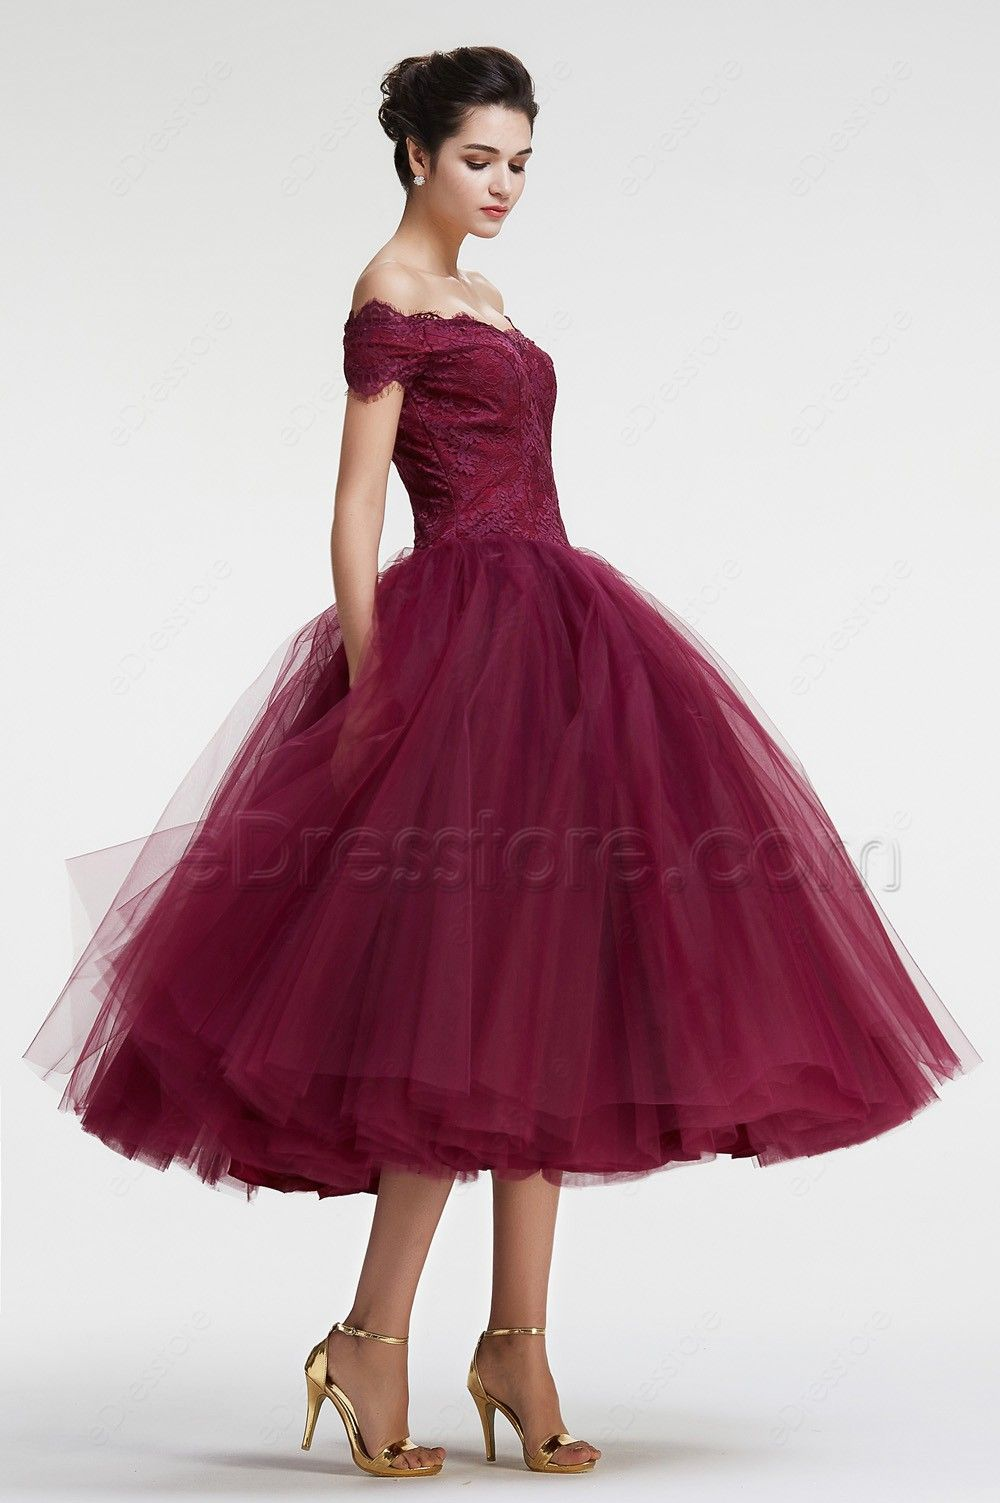 0b8b323fb3d The burgundy prom dress features off the shoulder neckline with scalloped  lace